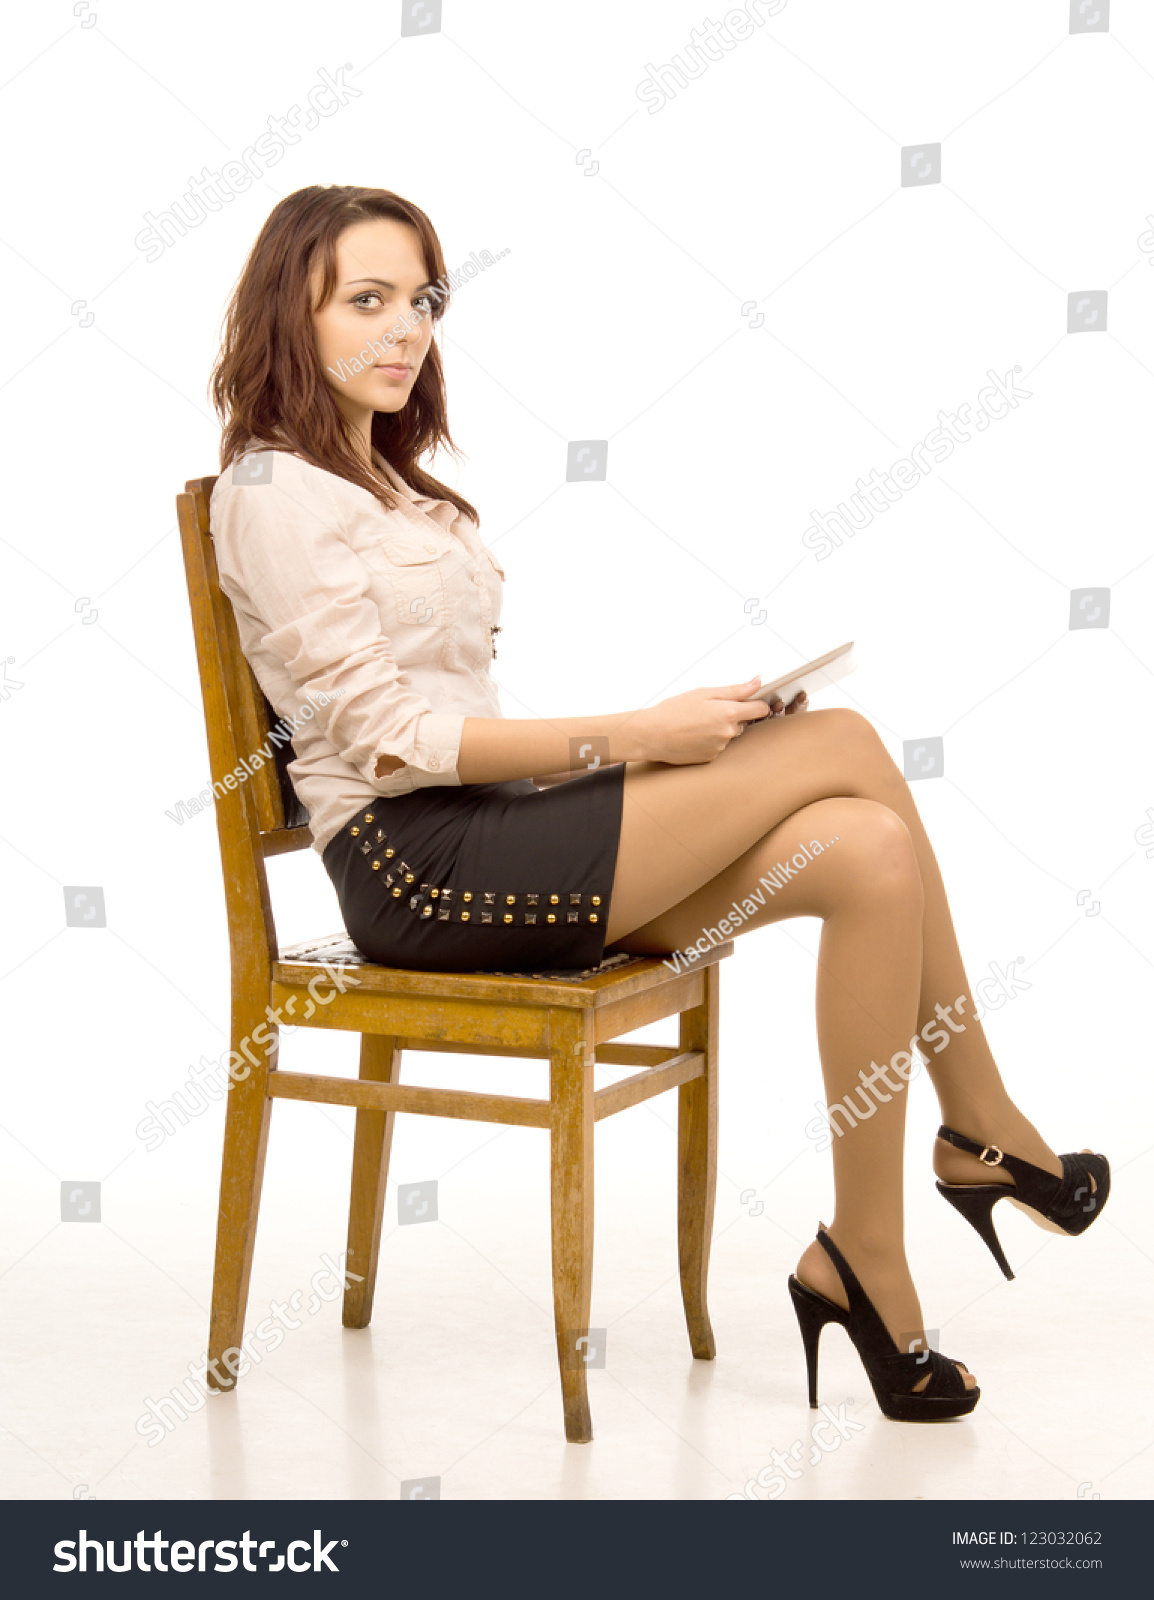 How to draw a chair youtube - Crossed Legs Images Usseek Com